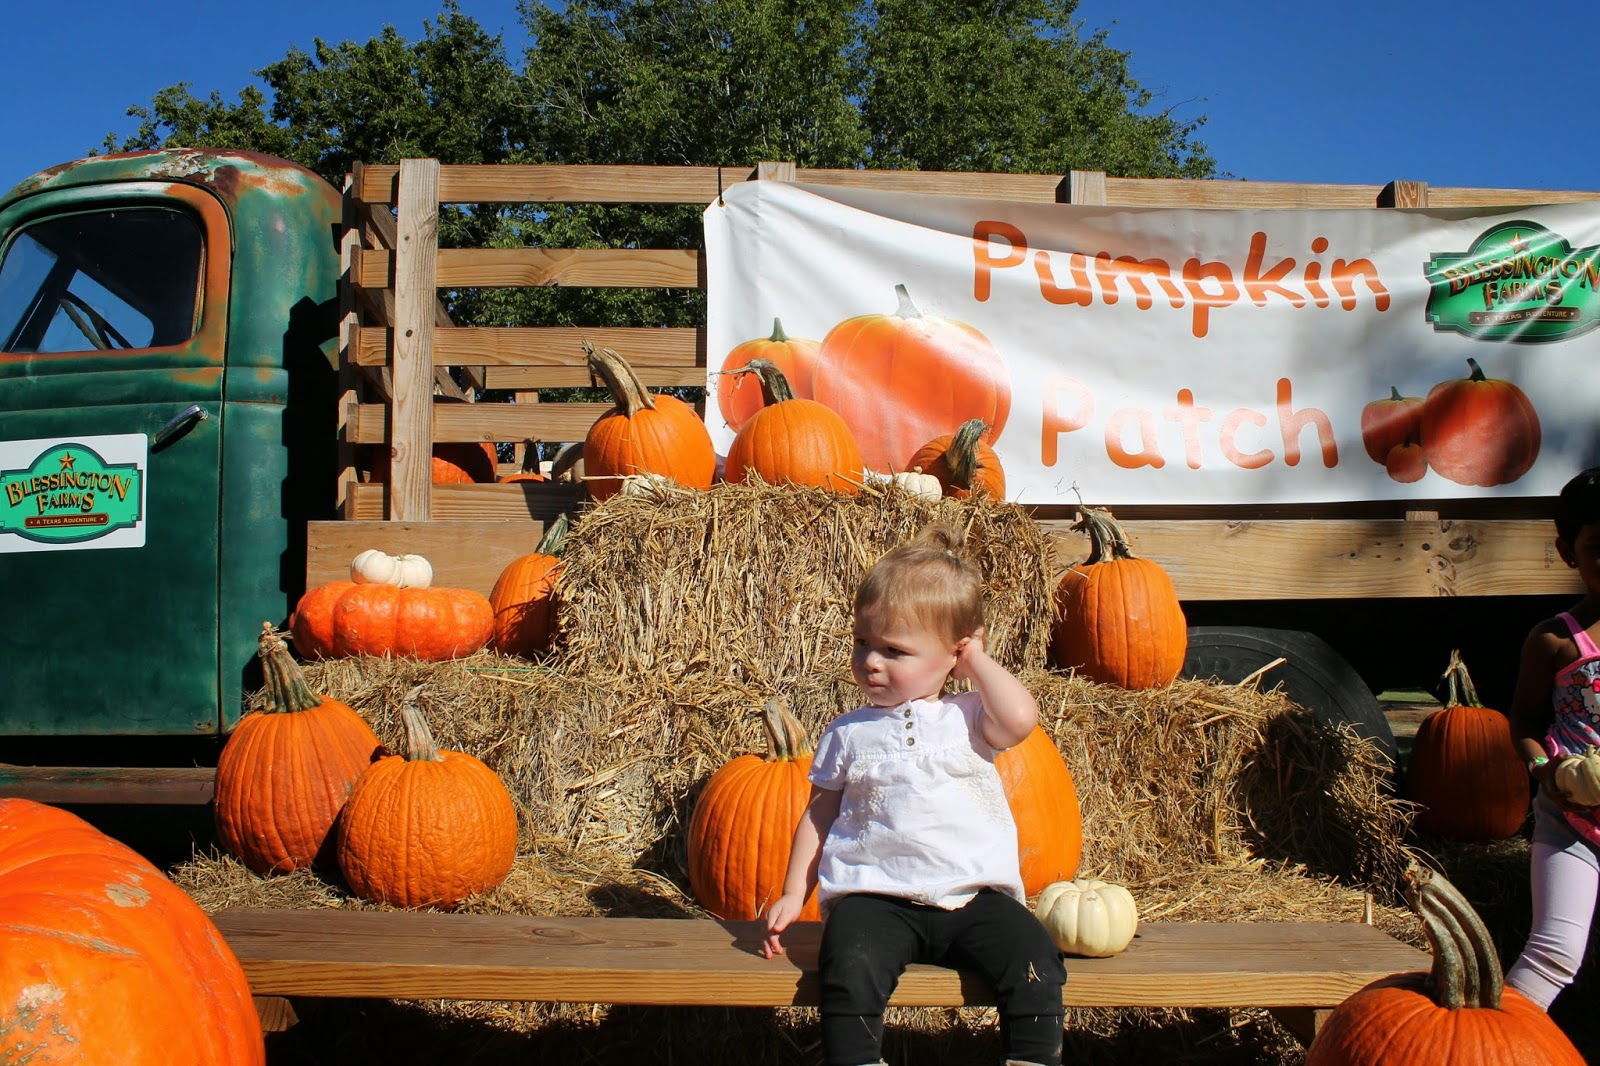 Pumpkin patch at Blessington farms | Bubbles and Gold (www.bubblesandgold.com)